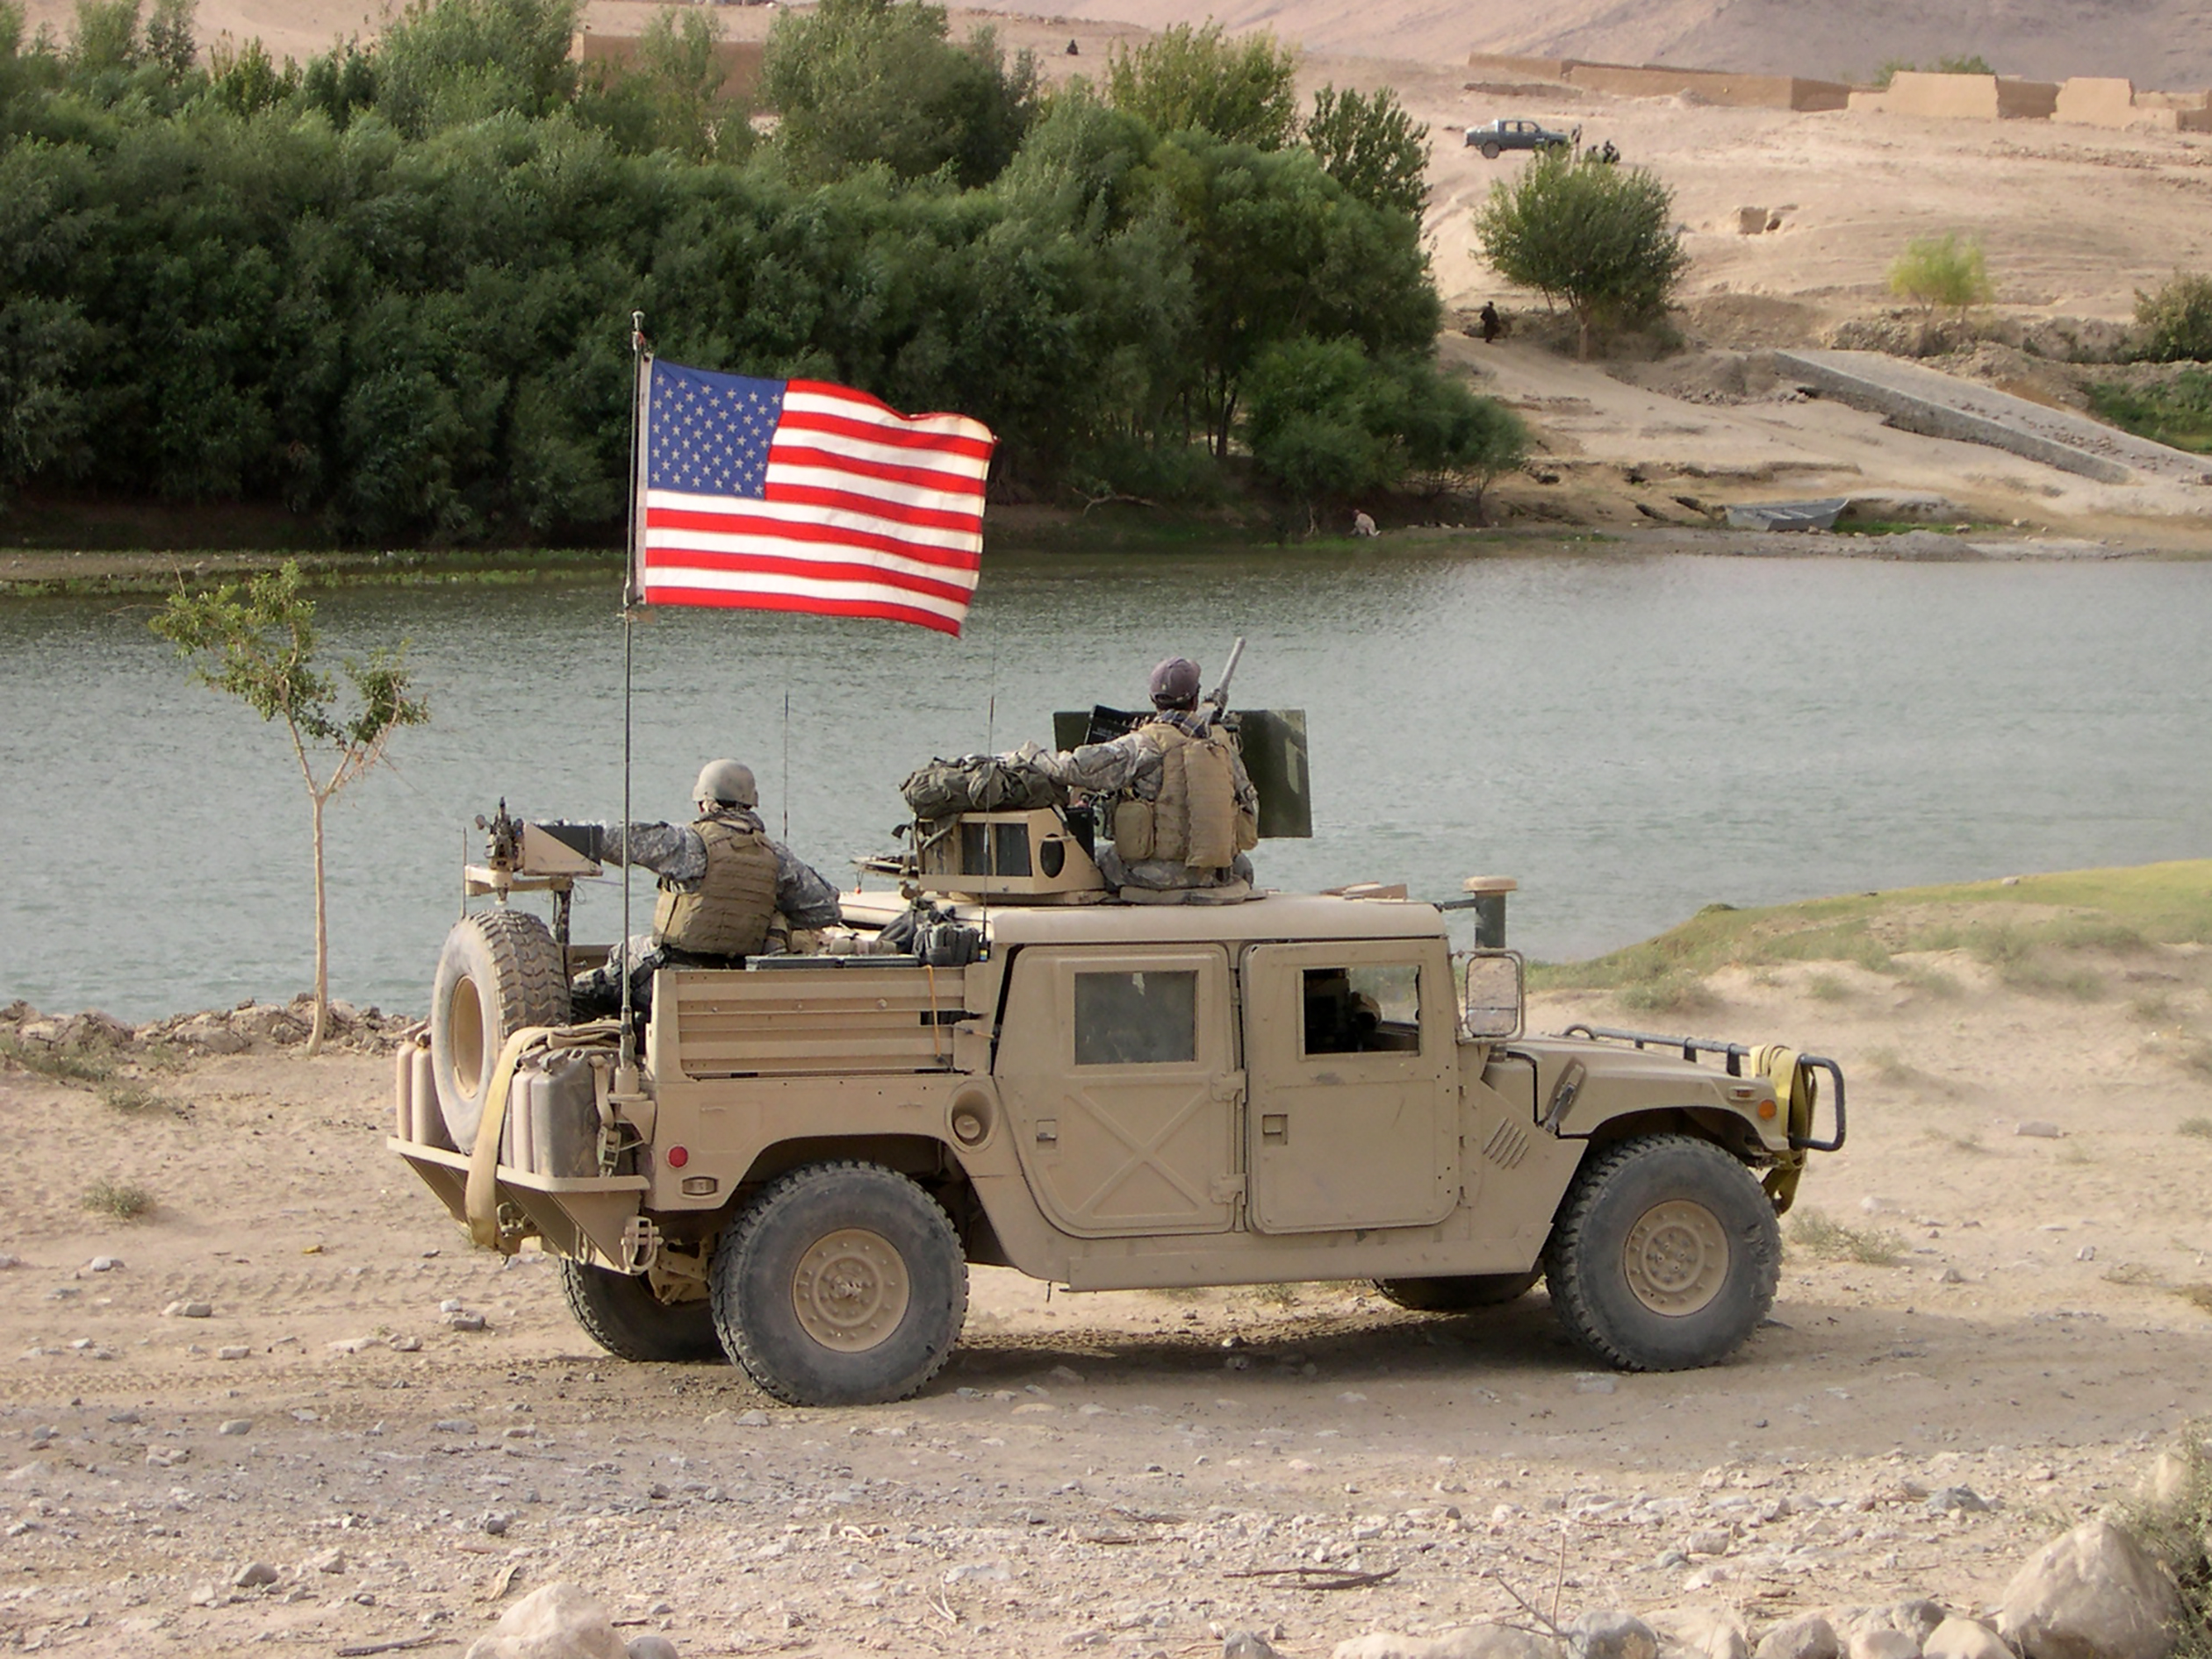 SOF Humvee along the Helmand River in Afghanistan